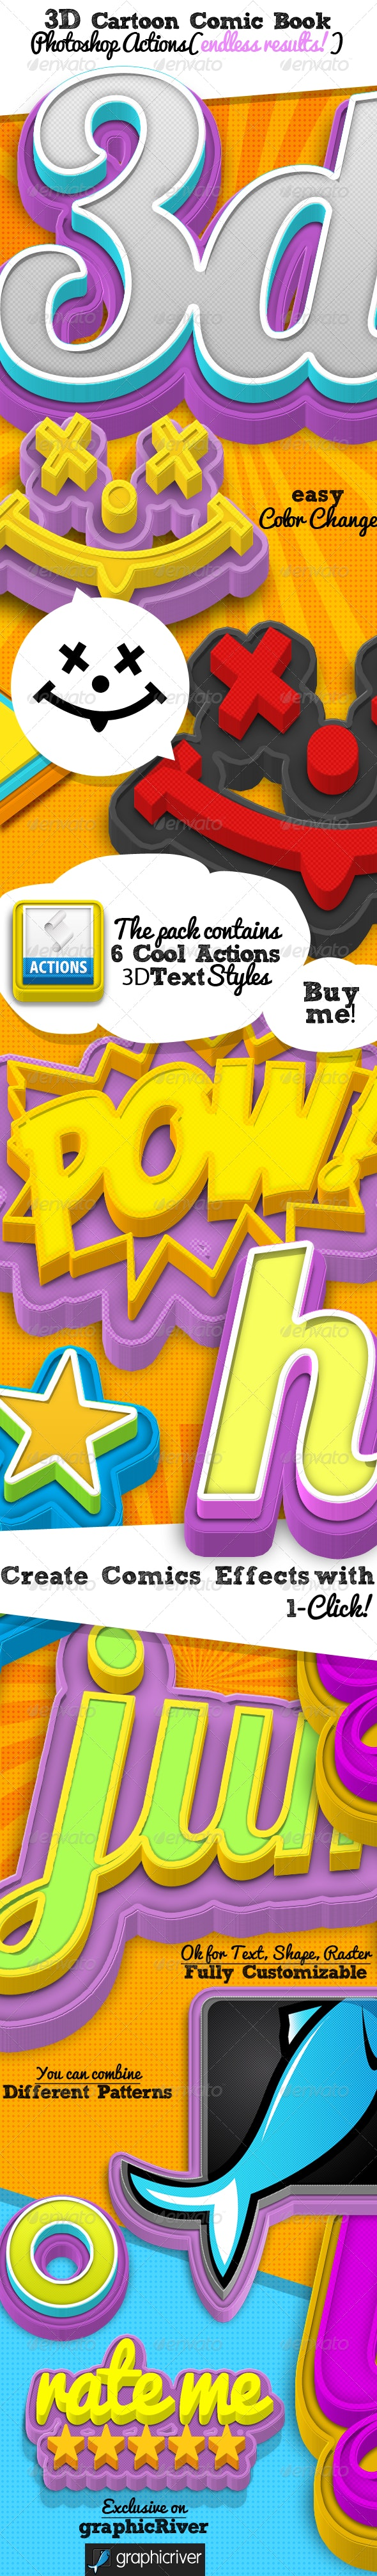 3D Cartoon Comic Book Photoshop Style - Text Effects Actions